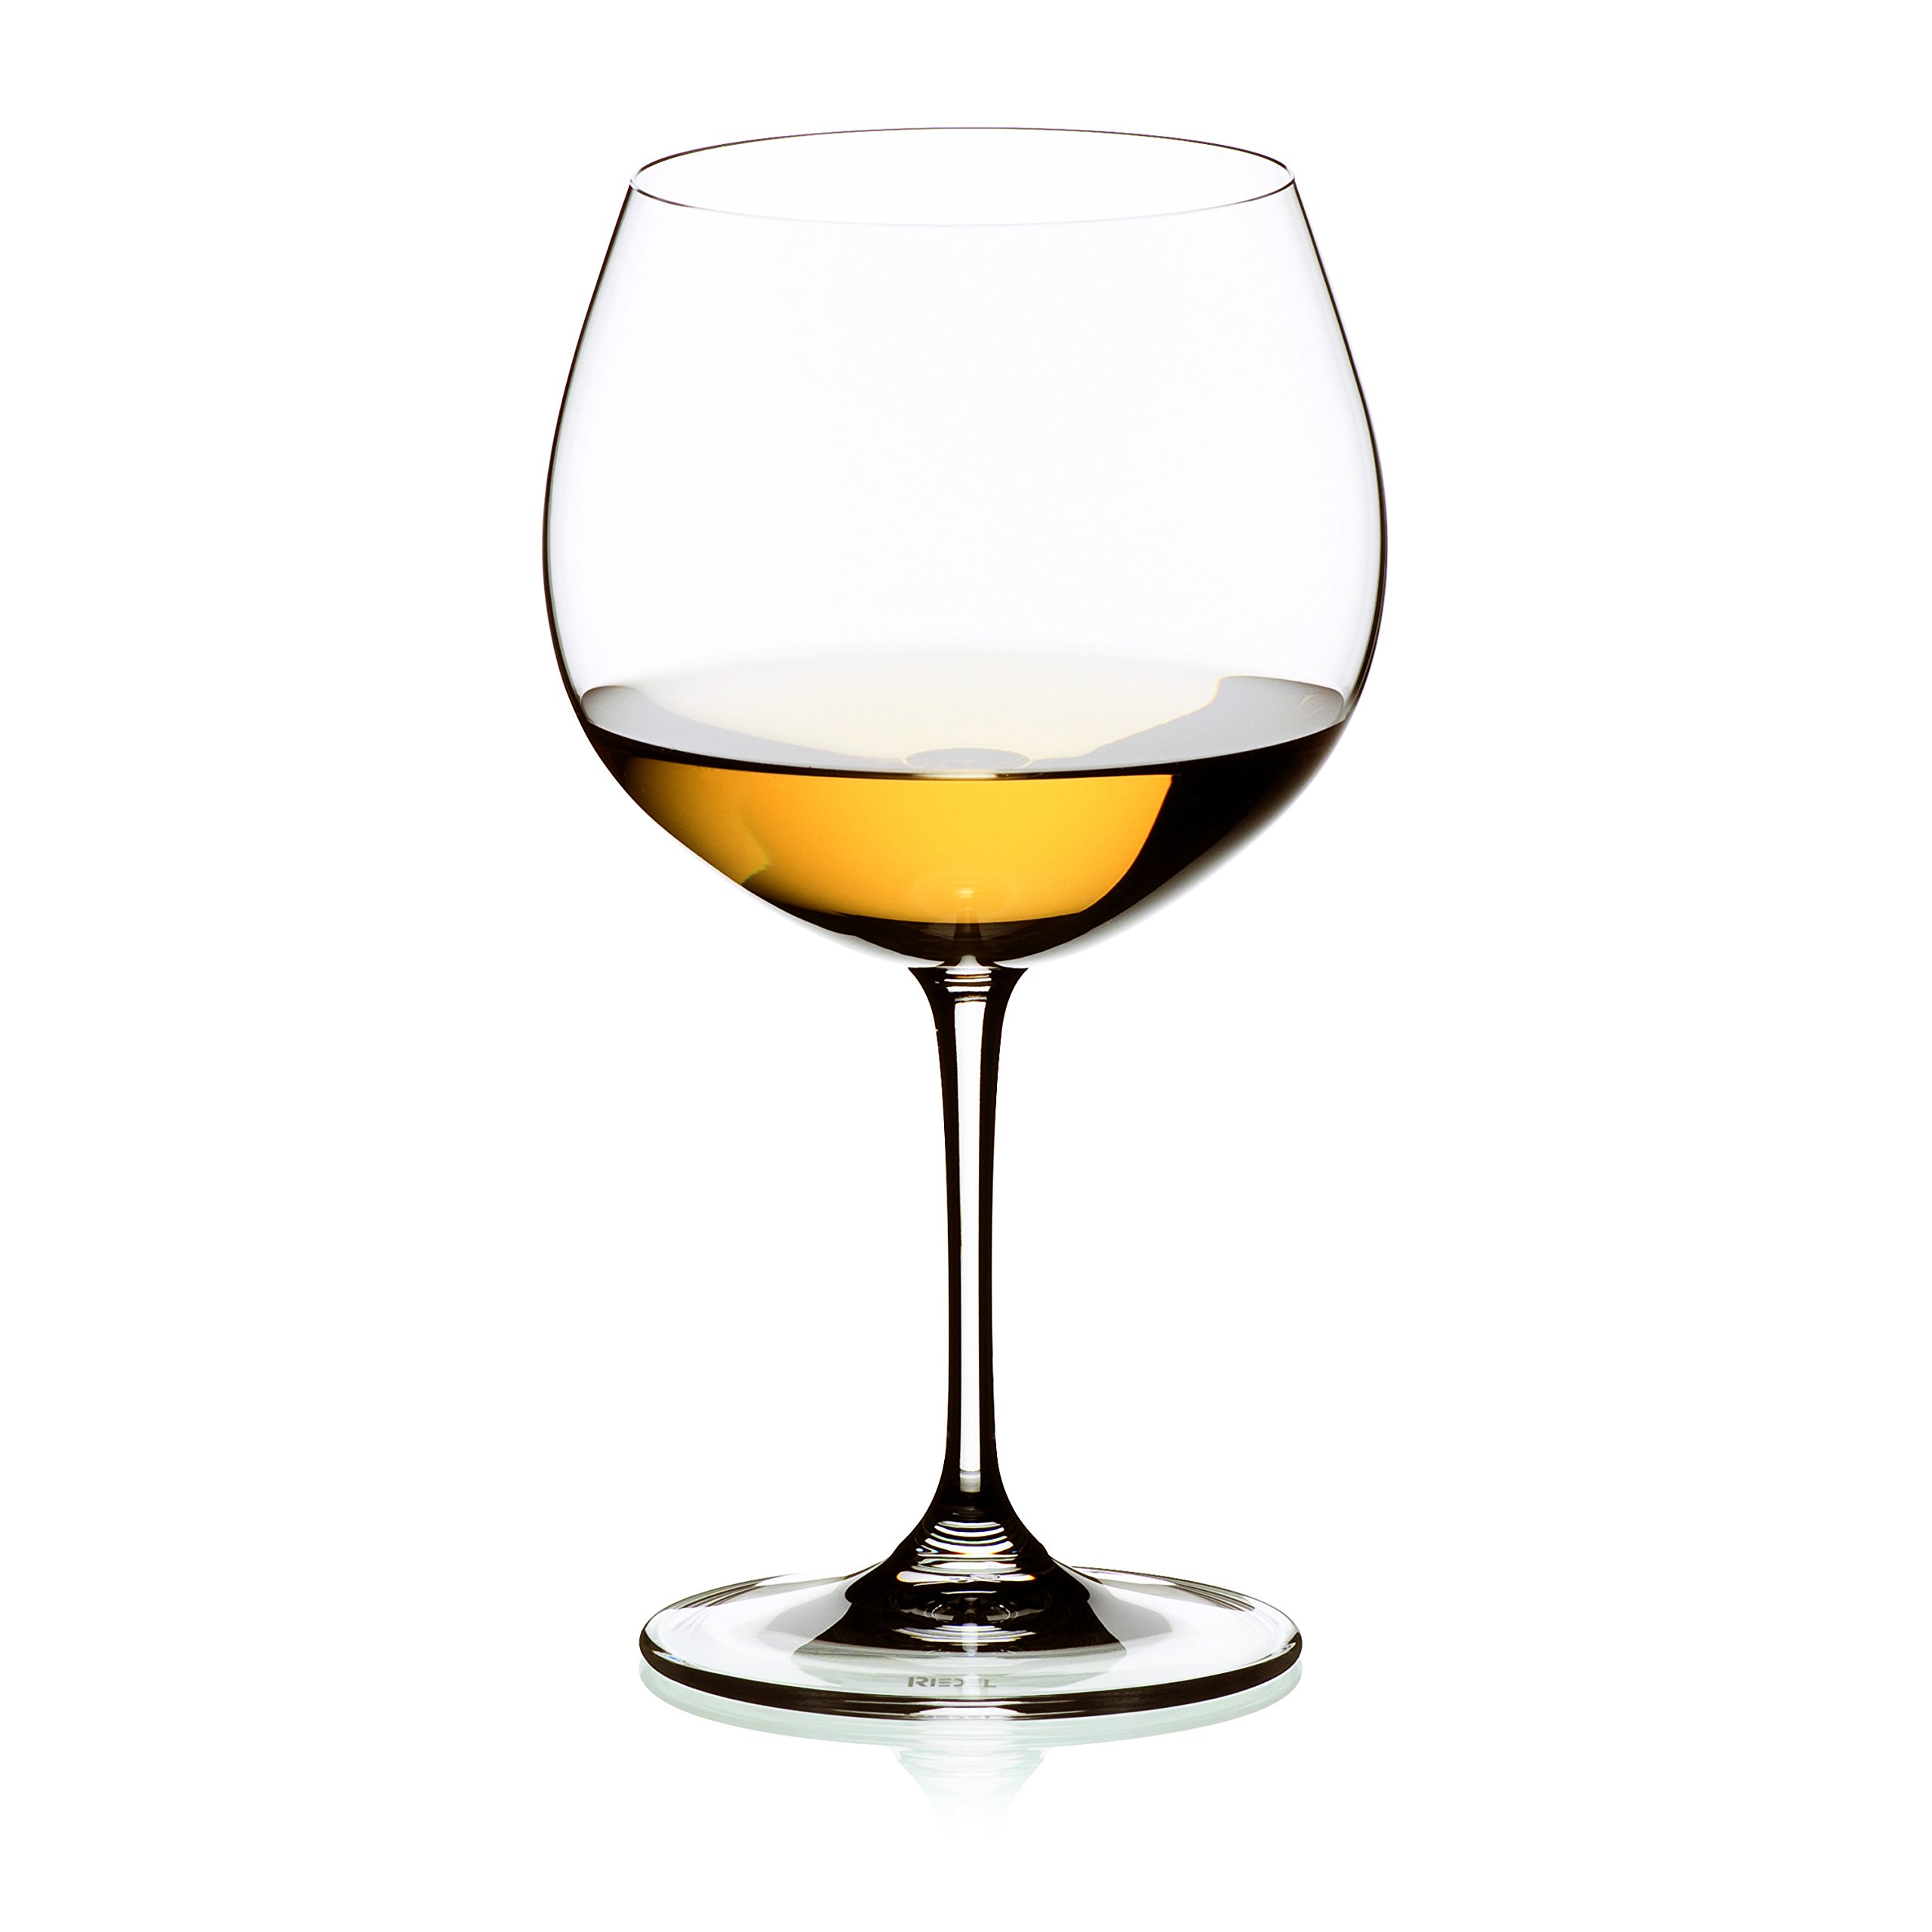 Riedel Vinum Montrachet Chardonnay Glasses, Set of 4